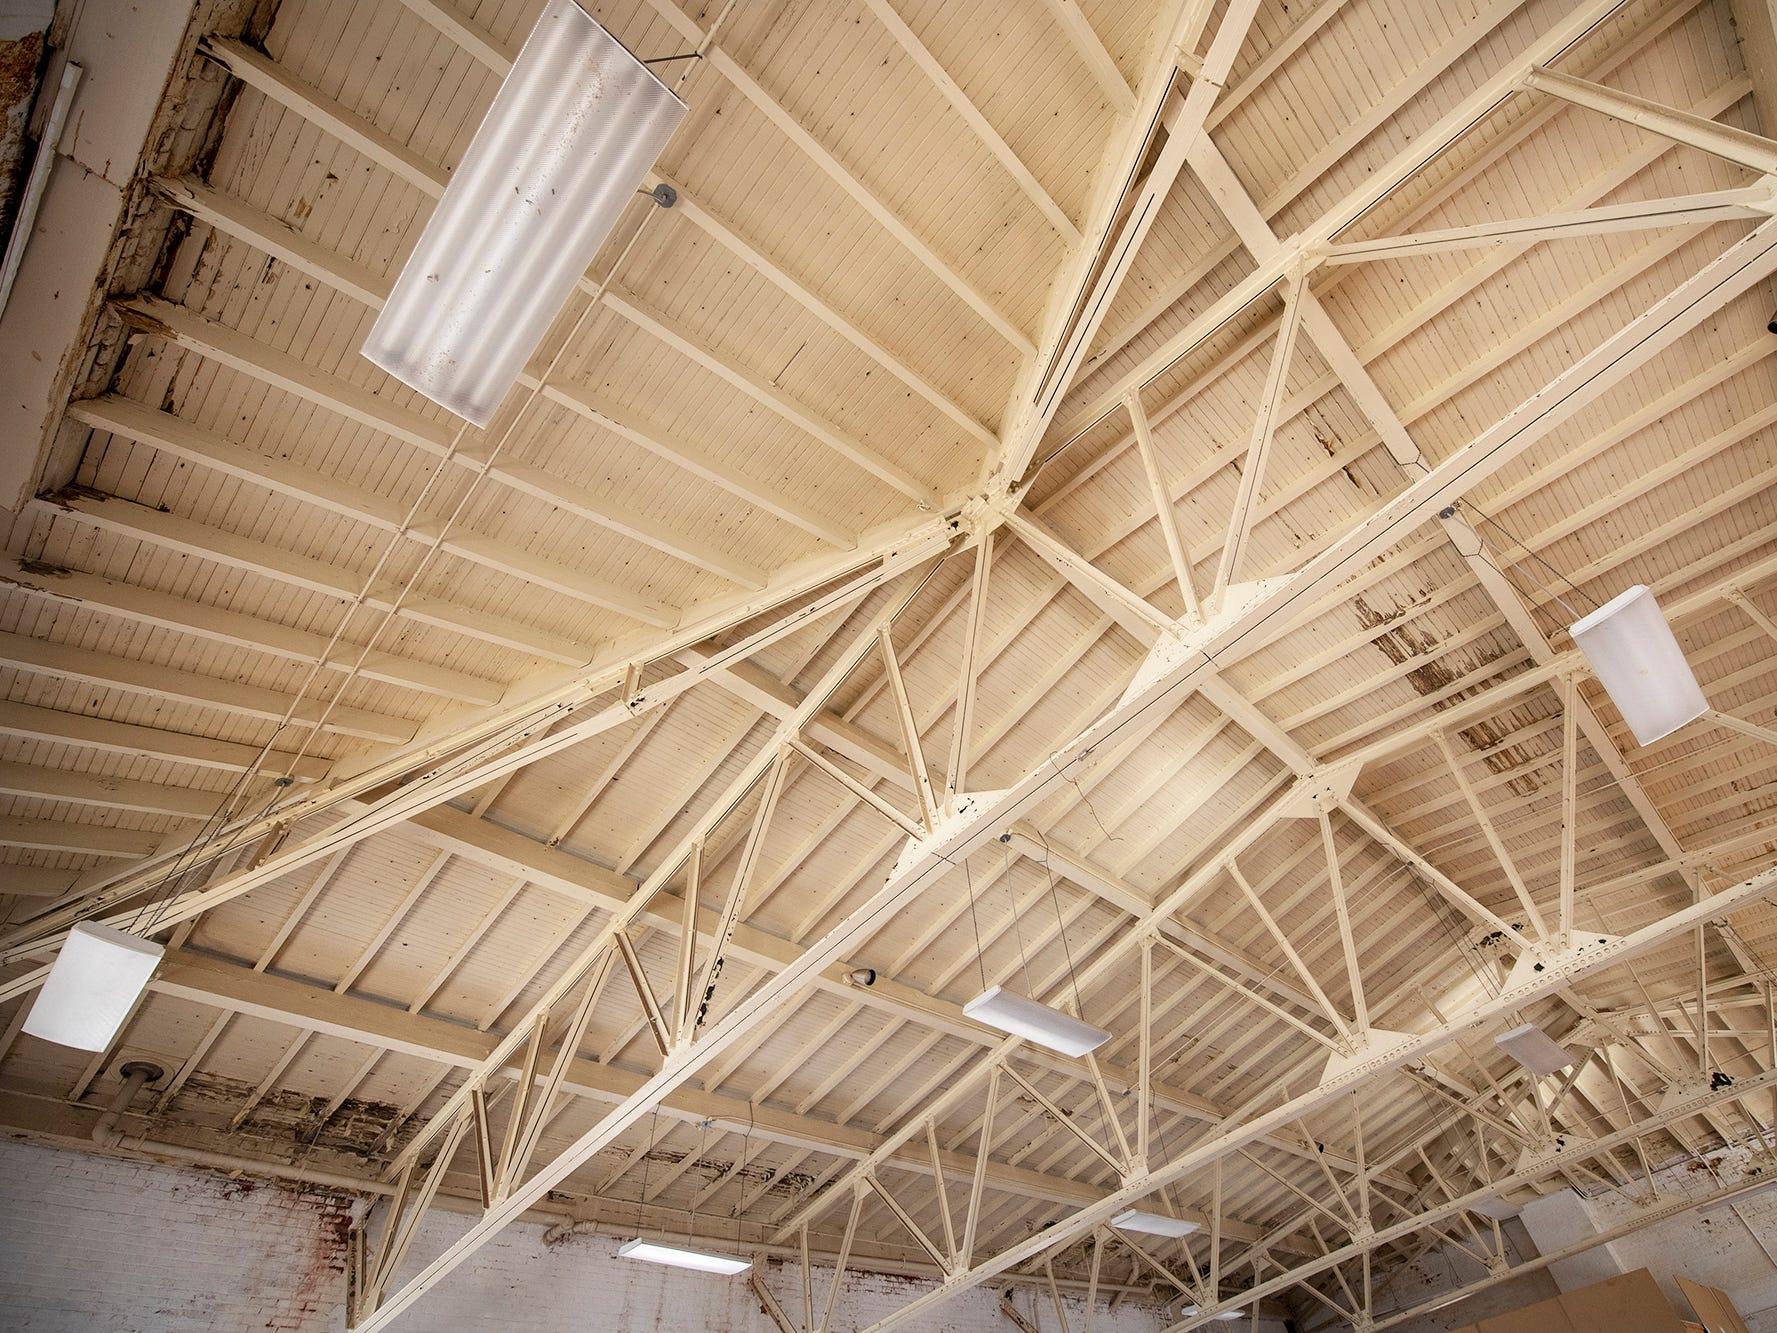 The second floor gym of the old armory will retain the exposed truss work on the ceiling. The York Armory, a brick fortress built in 1913 once used by the Pa. National Guard, will soon be transformed into Keystone Kidspace, an educational experience for families. It's expected to open in 2020.